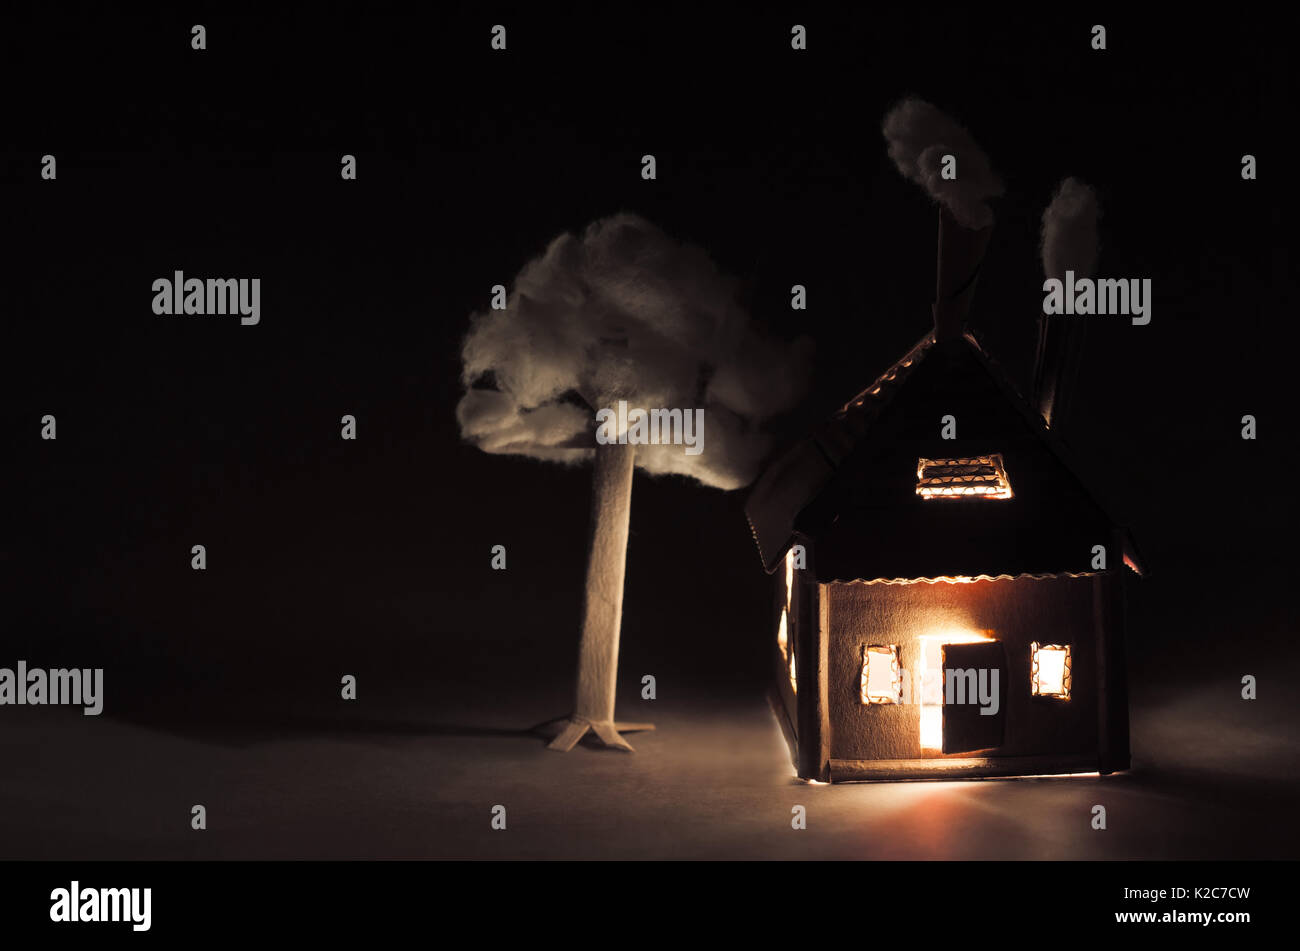 Cardboard house with  luminous windows, chimney and white smoke in the darkness. night time - Stock Image